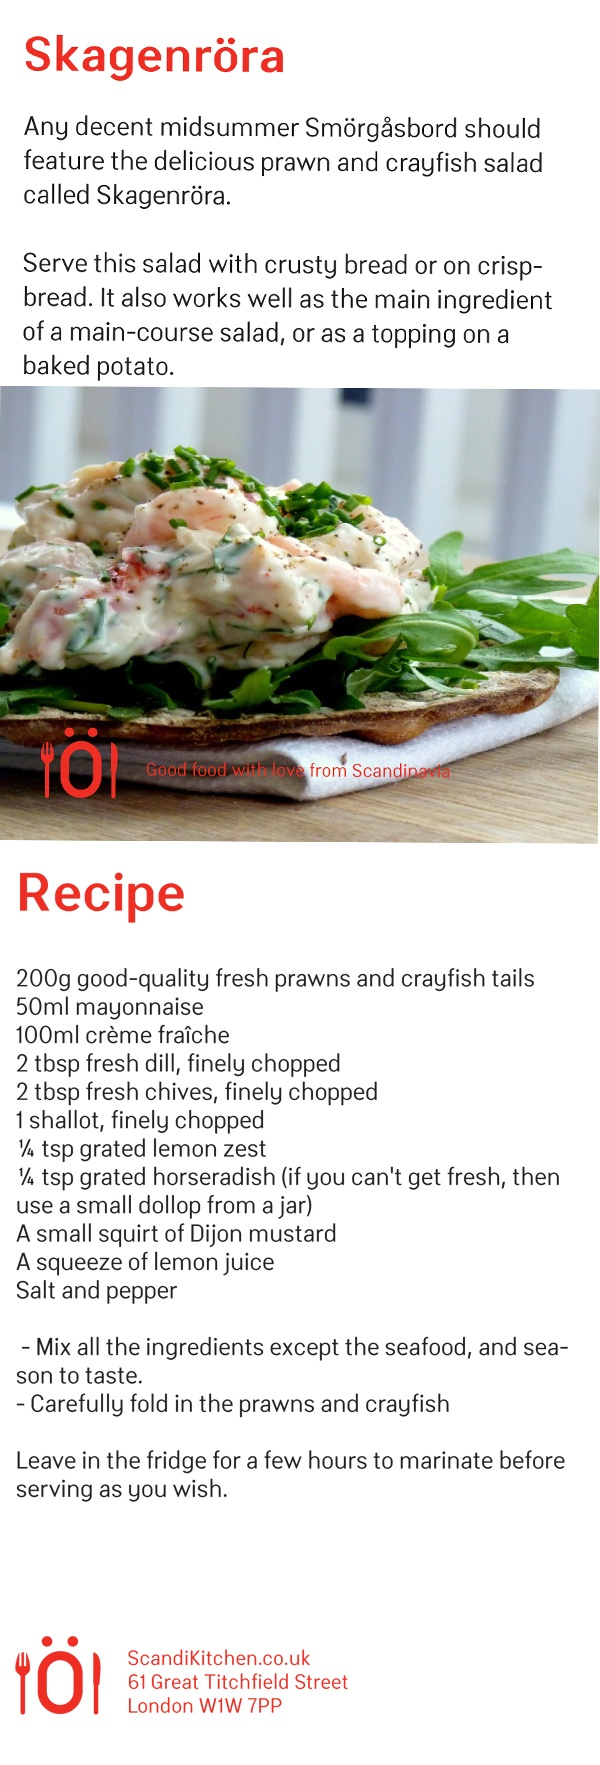 Skagenröra seafood salad - perfect for Midsummer. Here's a lovely recipe. www.scandikitchen.co.uk